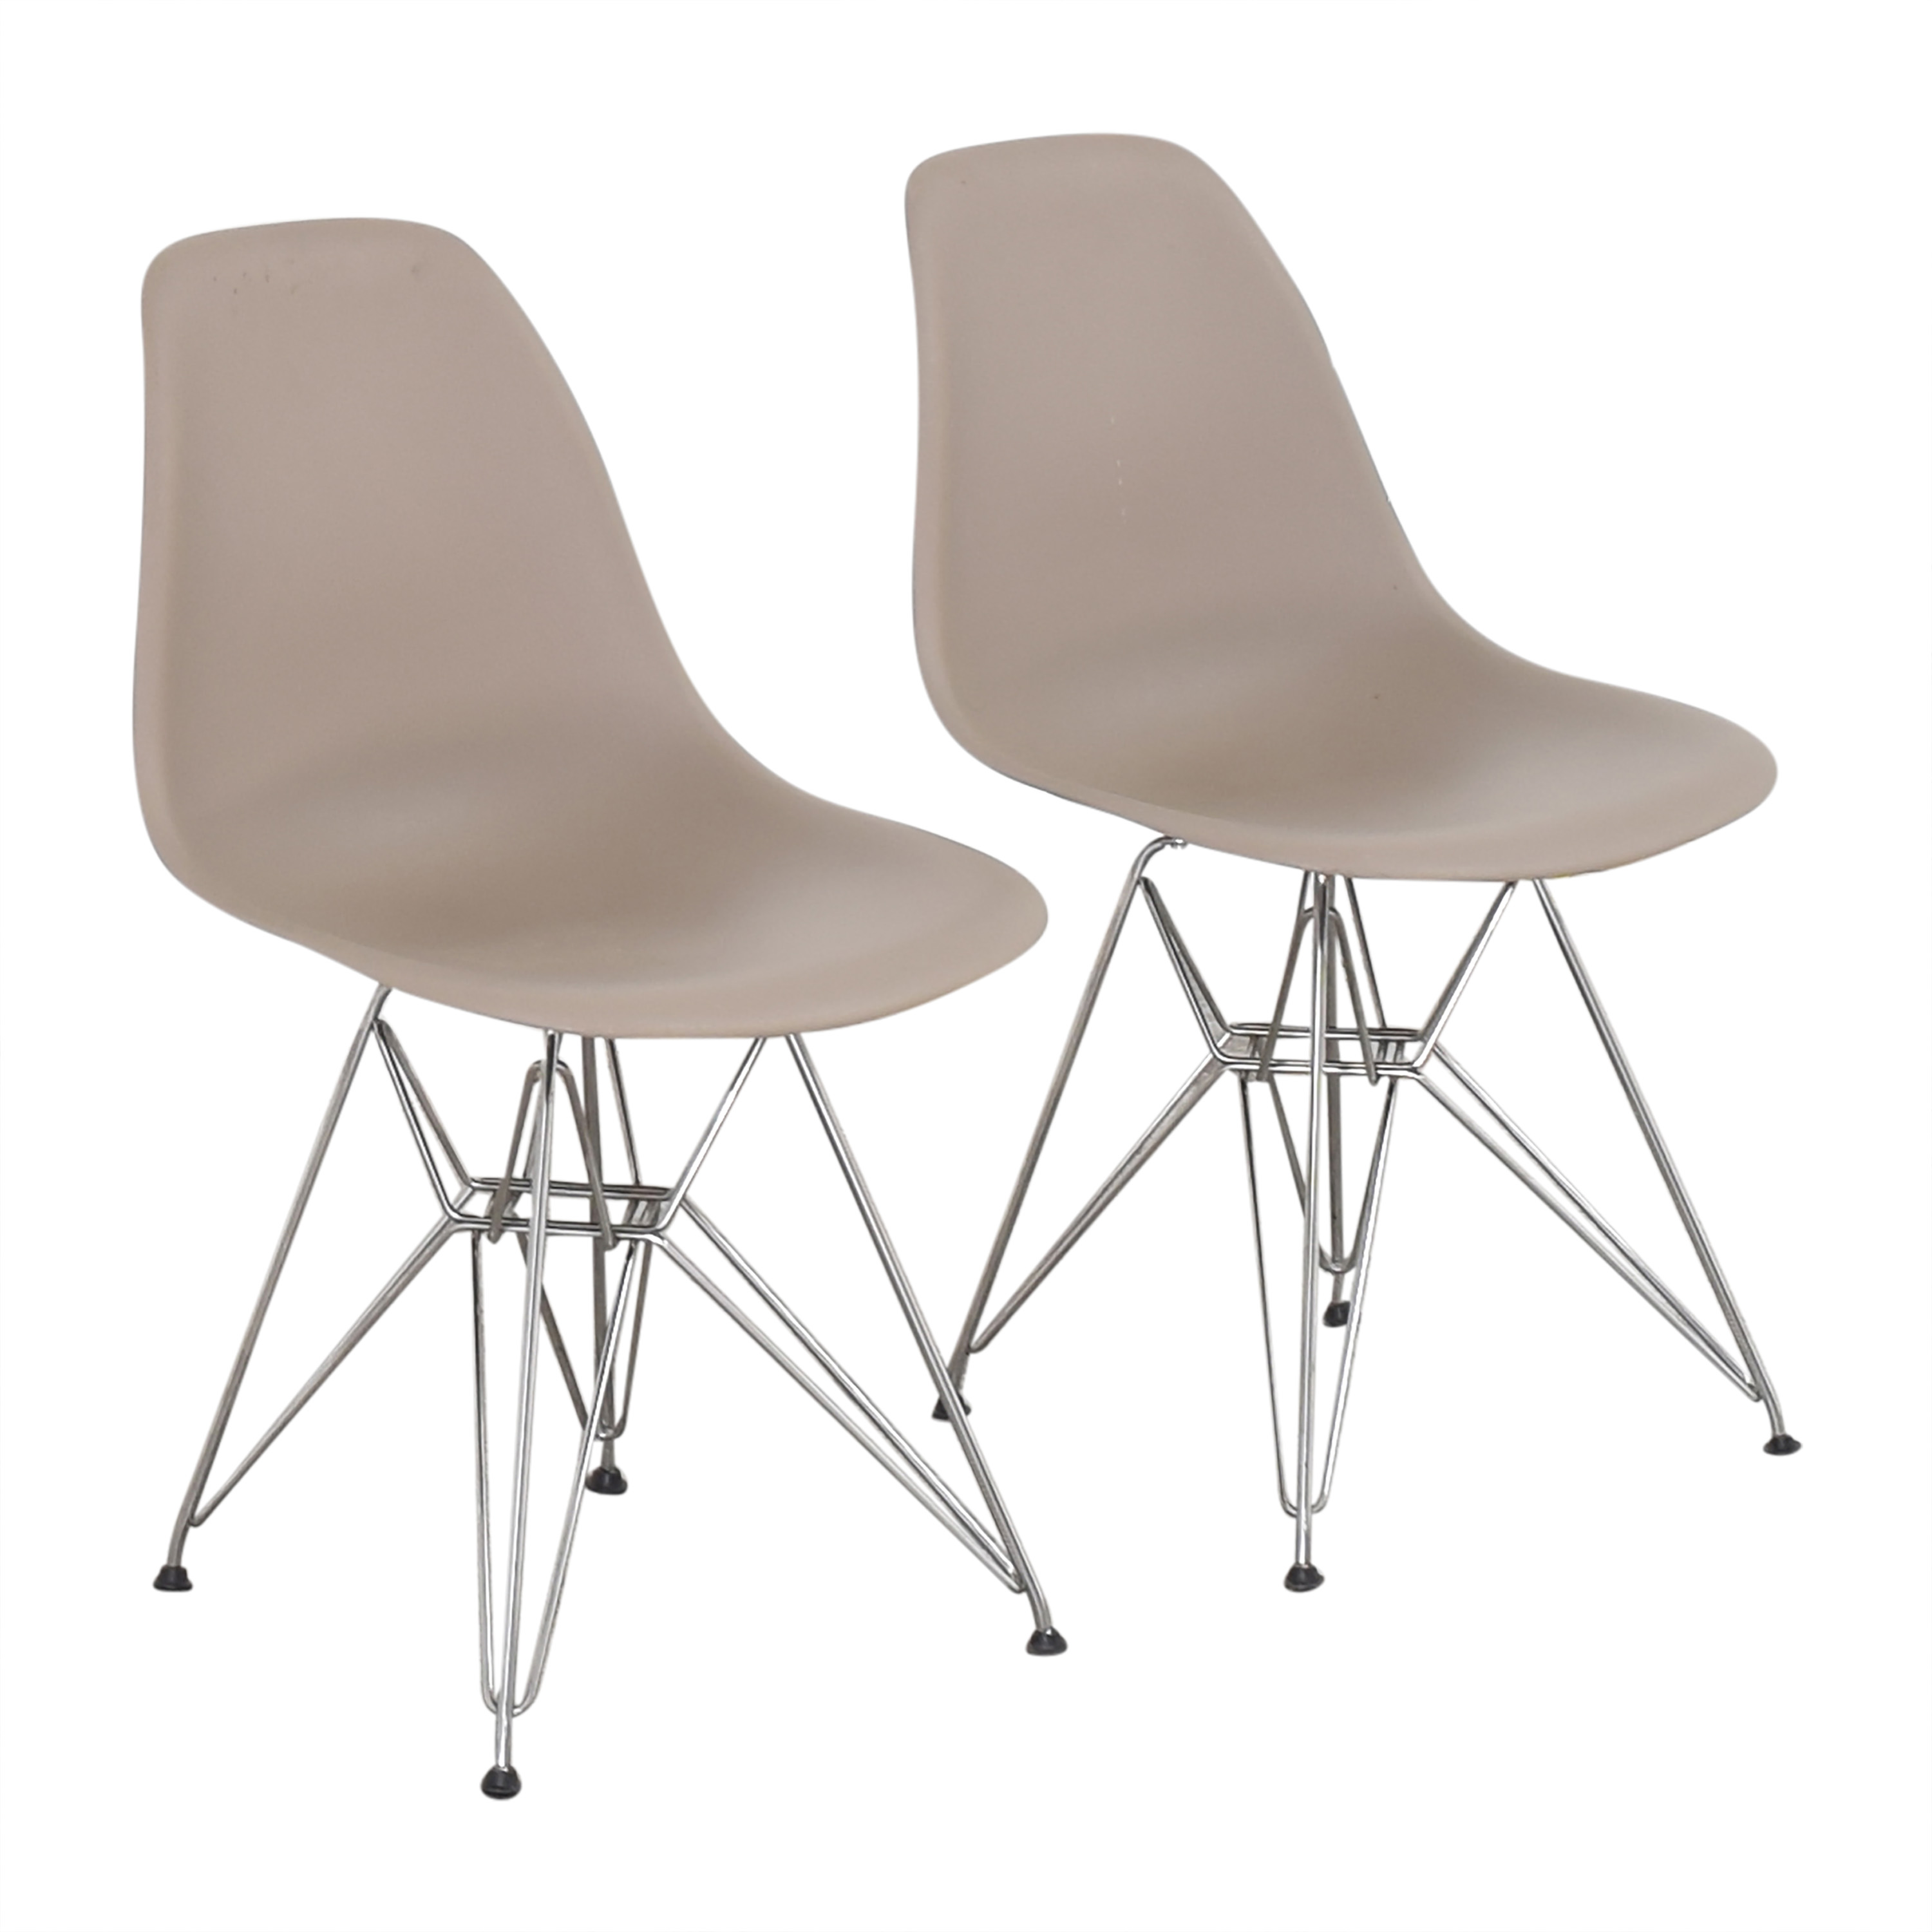 Herman Miller Herman Miller Eames Molded Dining Chairs coupon